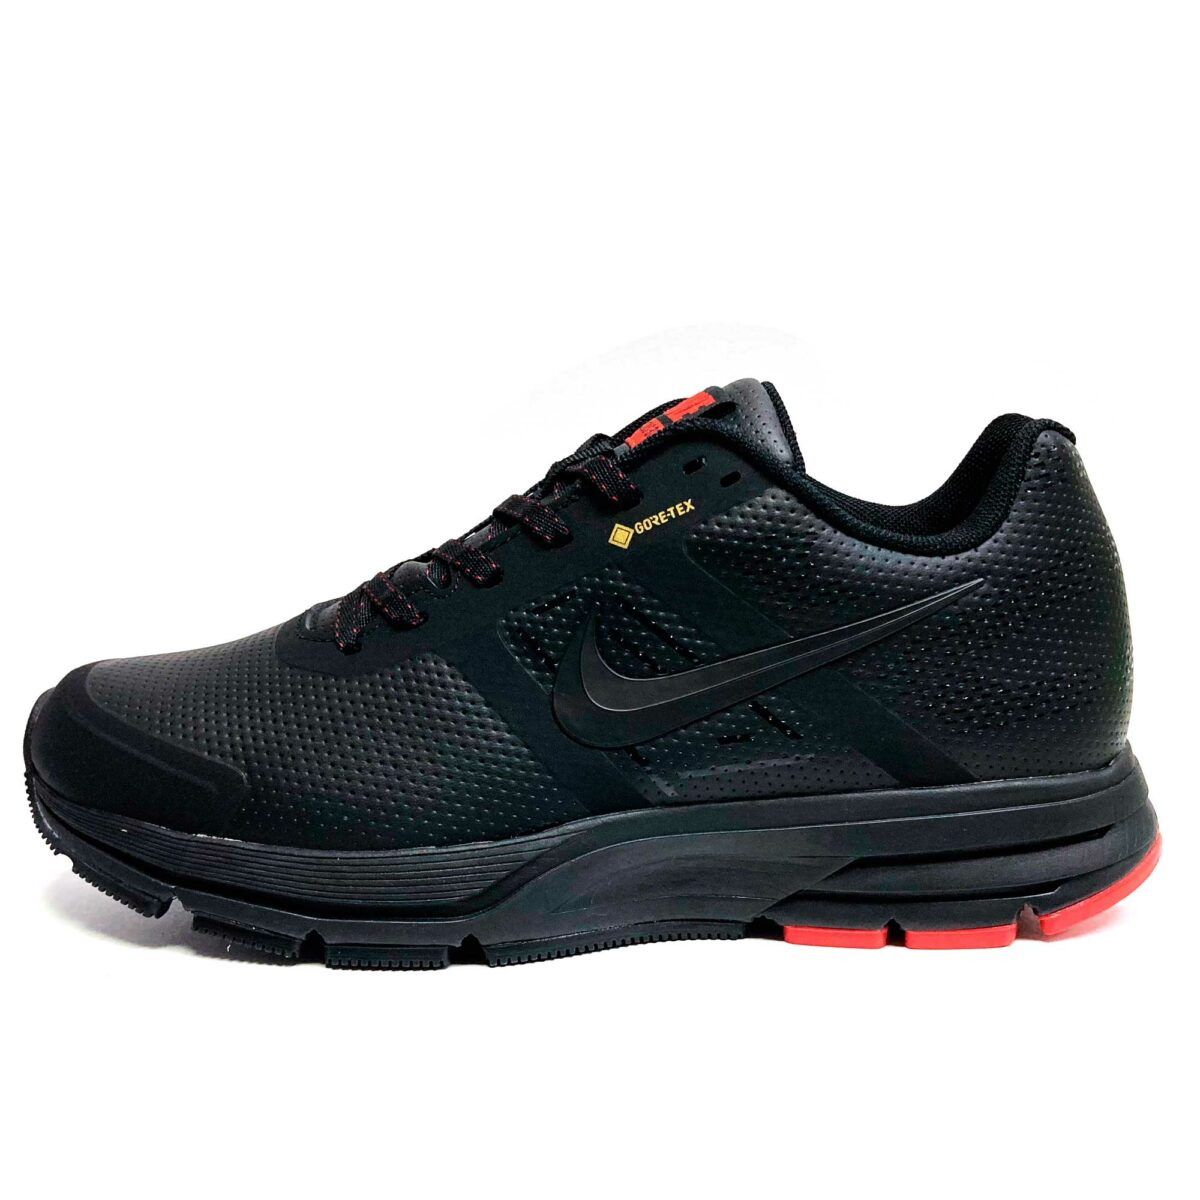 nike pegasus lether black red купить